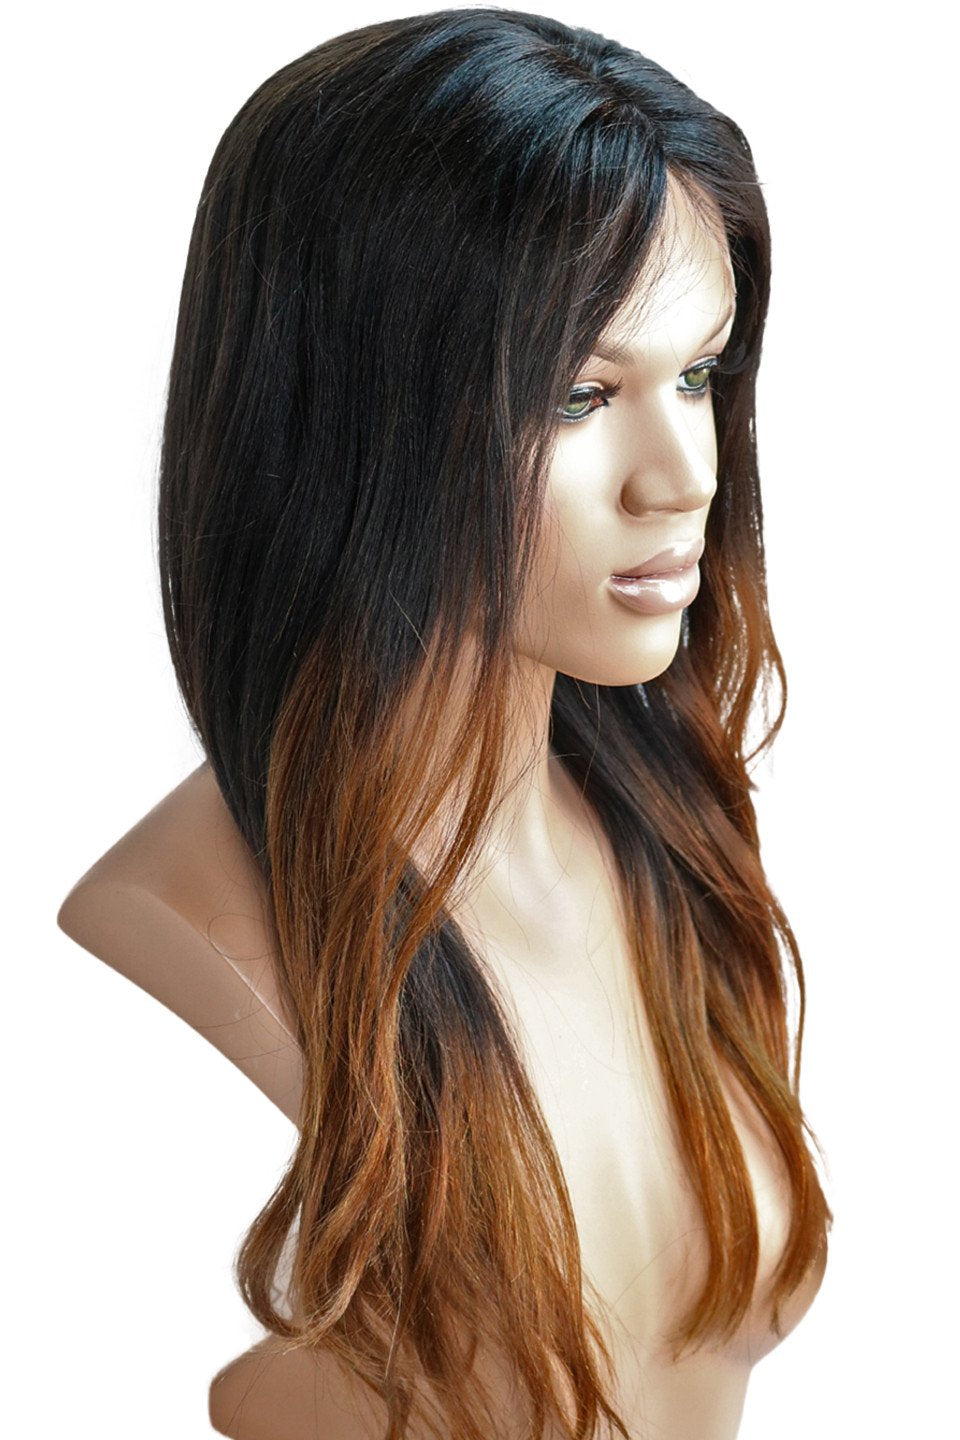 Clearance LACE FRONT WIG: Alissa Brown Ombre 16inches yaki medium cap